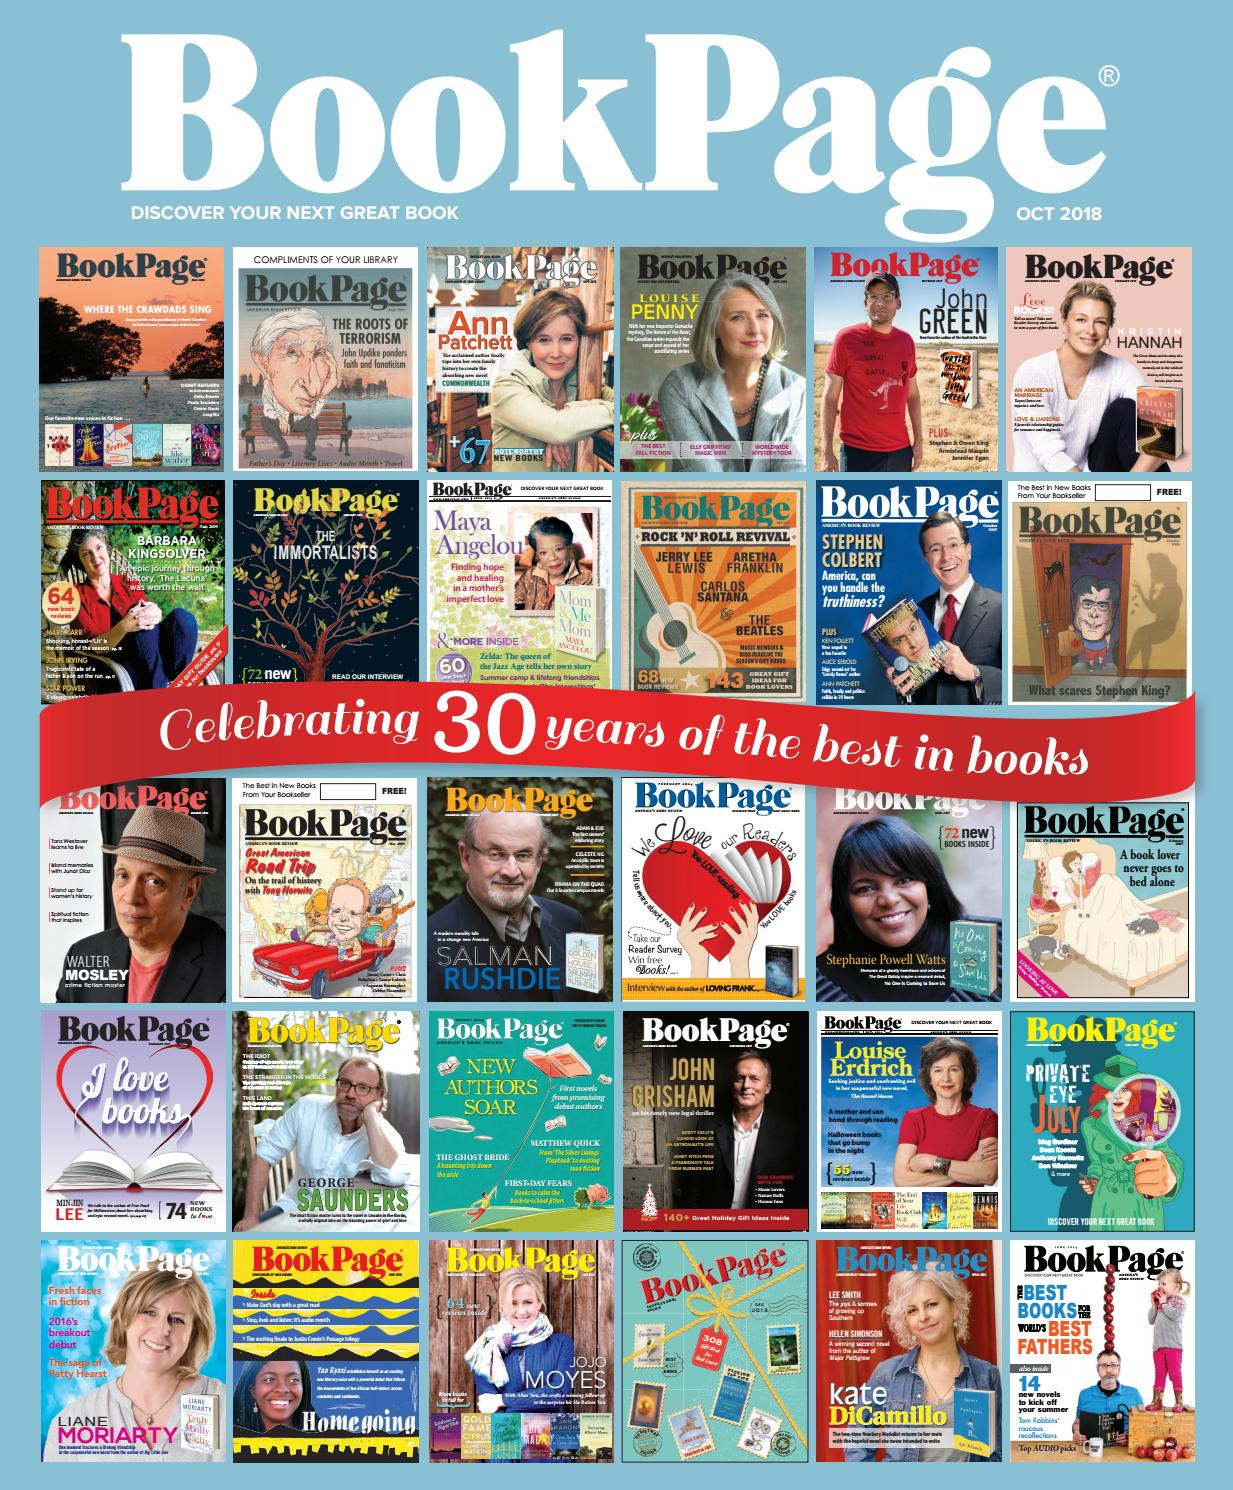 BookPage October 2018 by BookPage - issuu